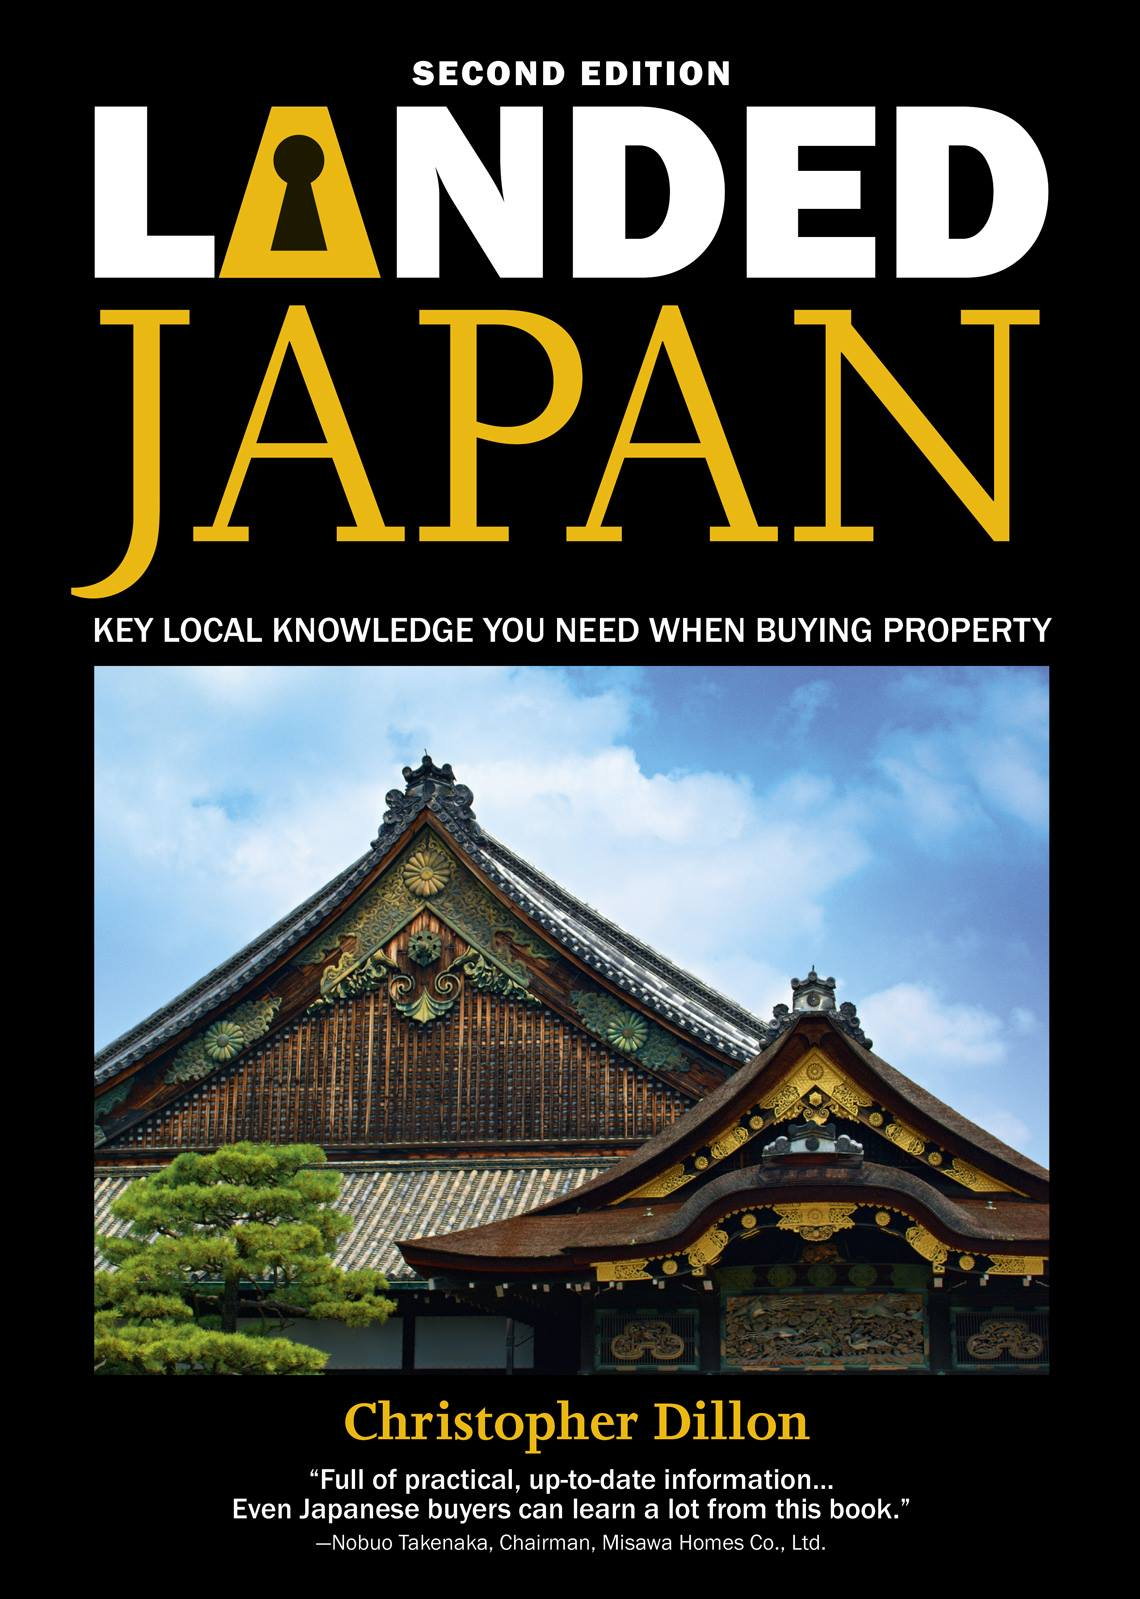 The front cover of the book Landed Japan